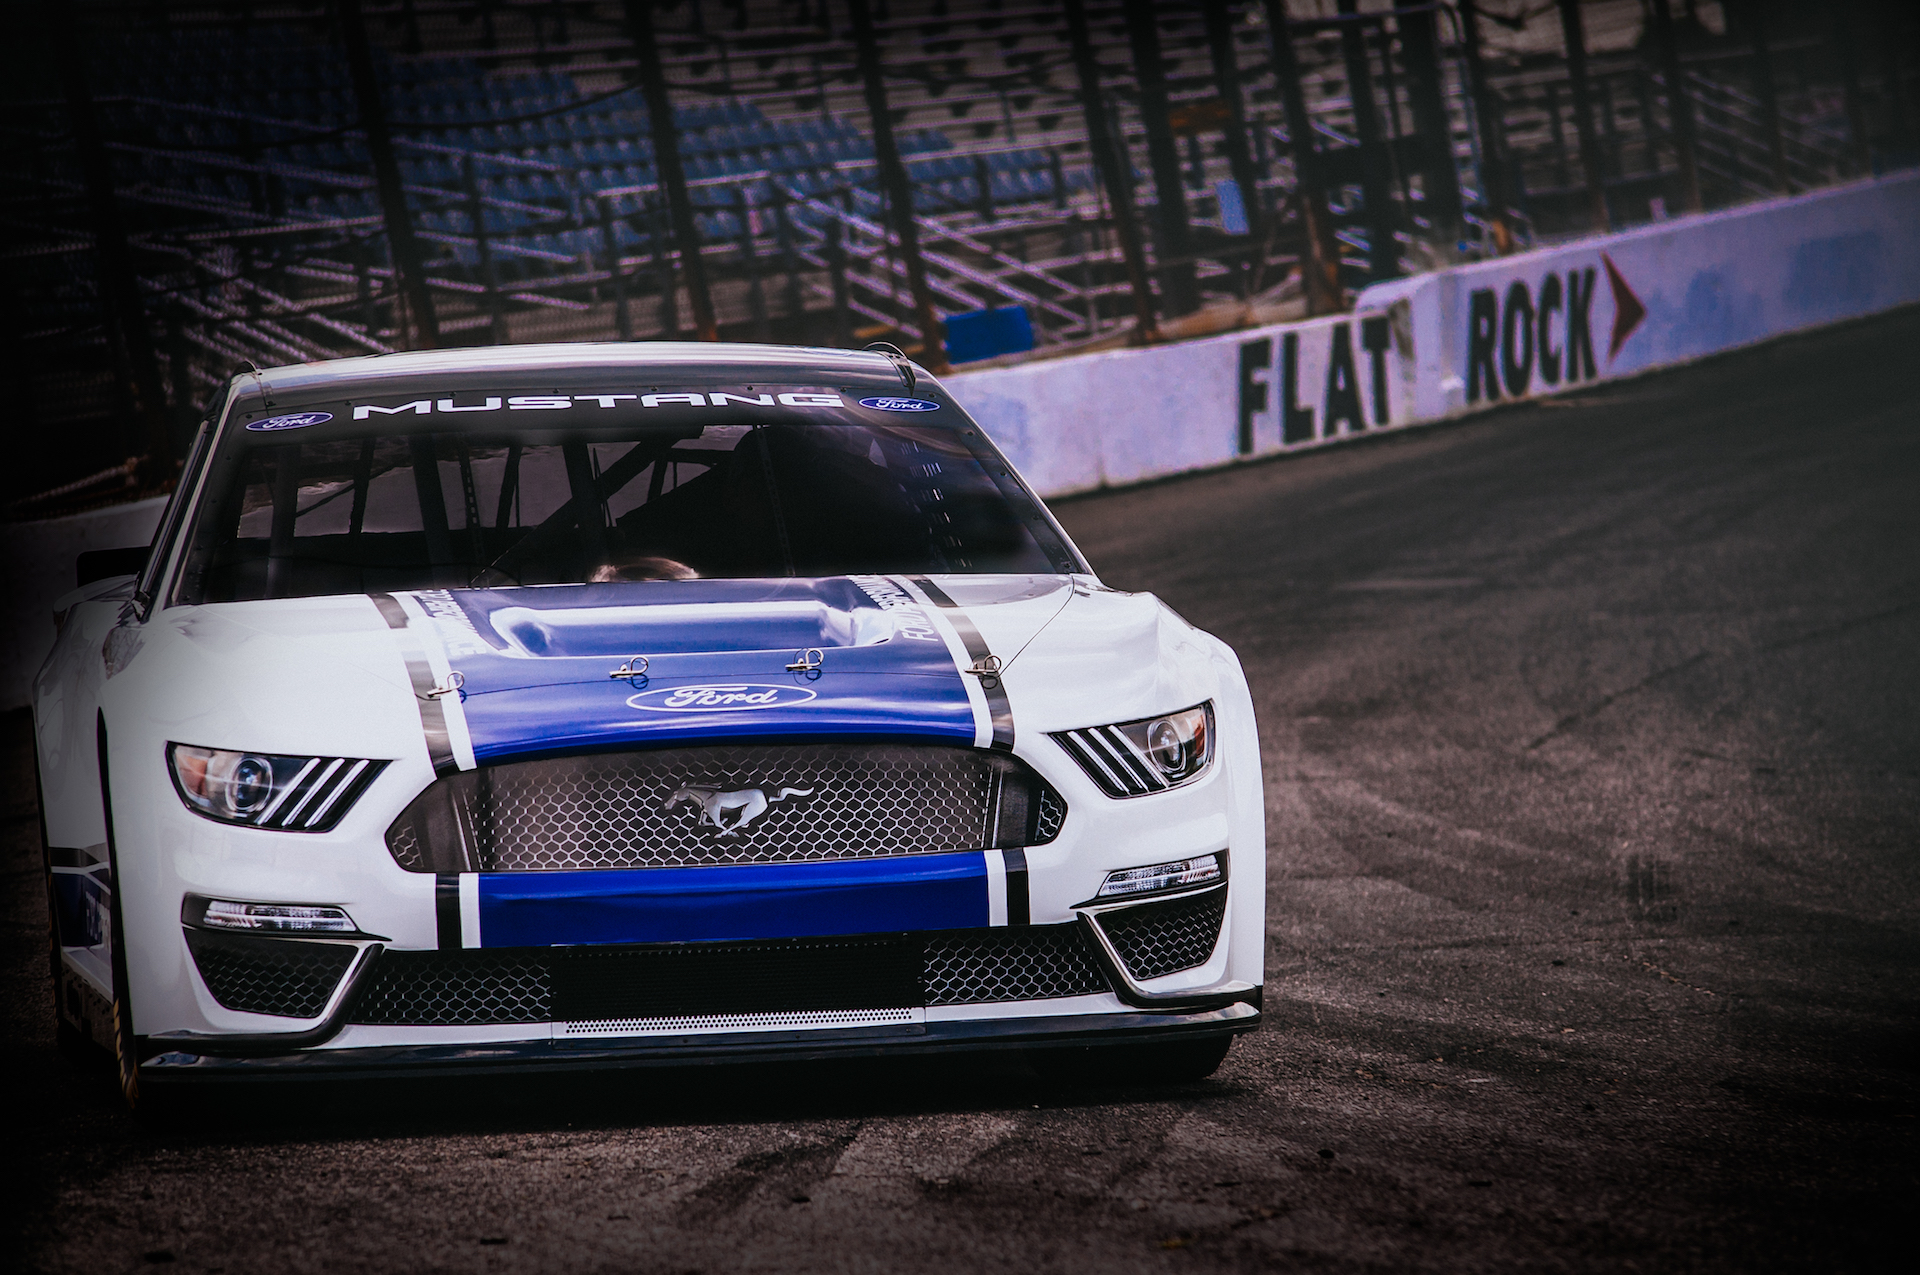 Pony up 2019 ford mustang nascar cup racer is ready for the track